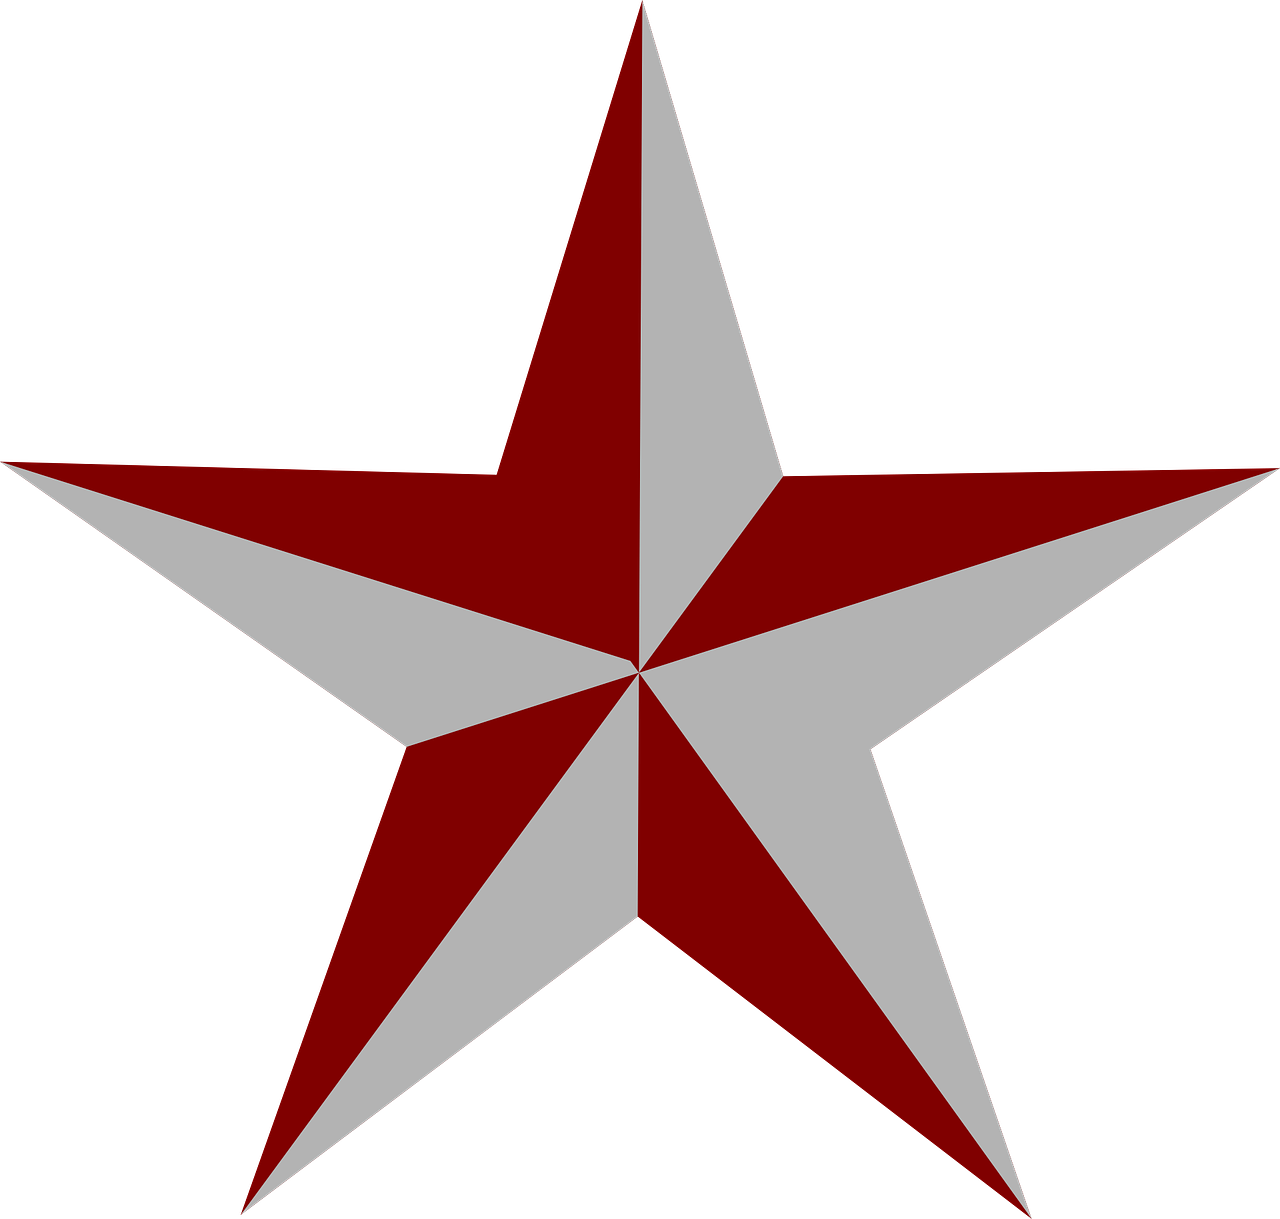 star red grey free photo